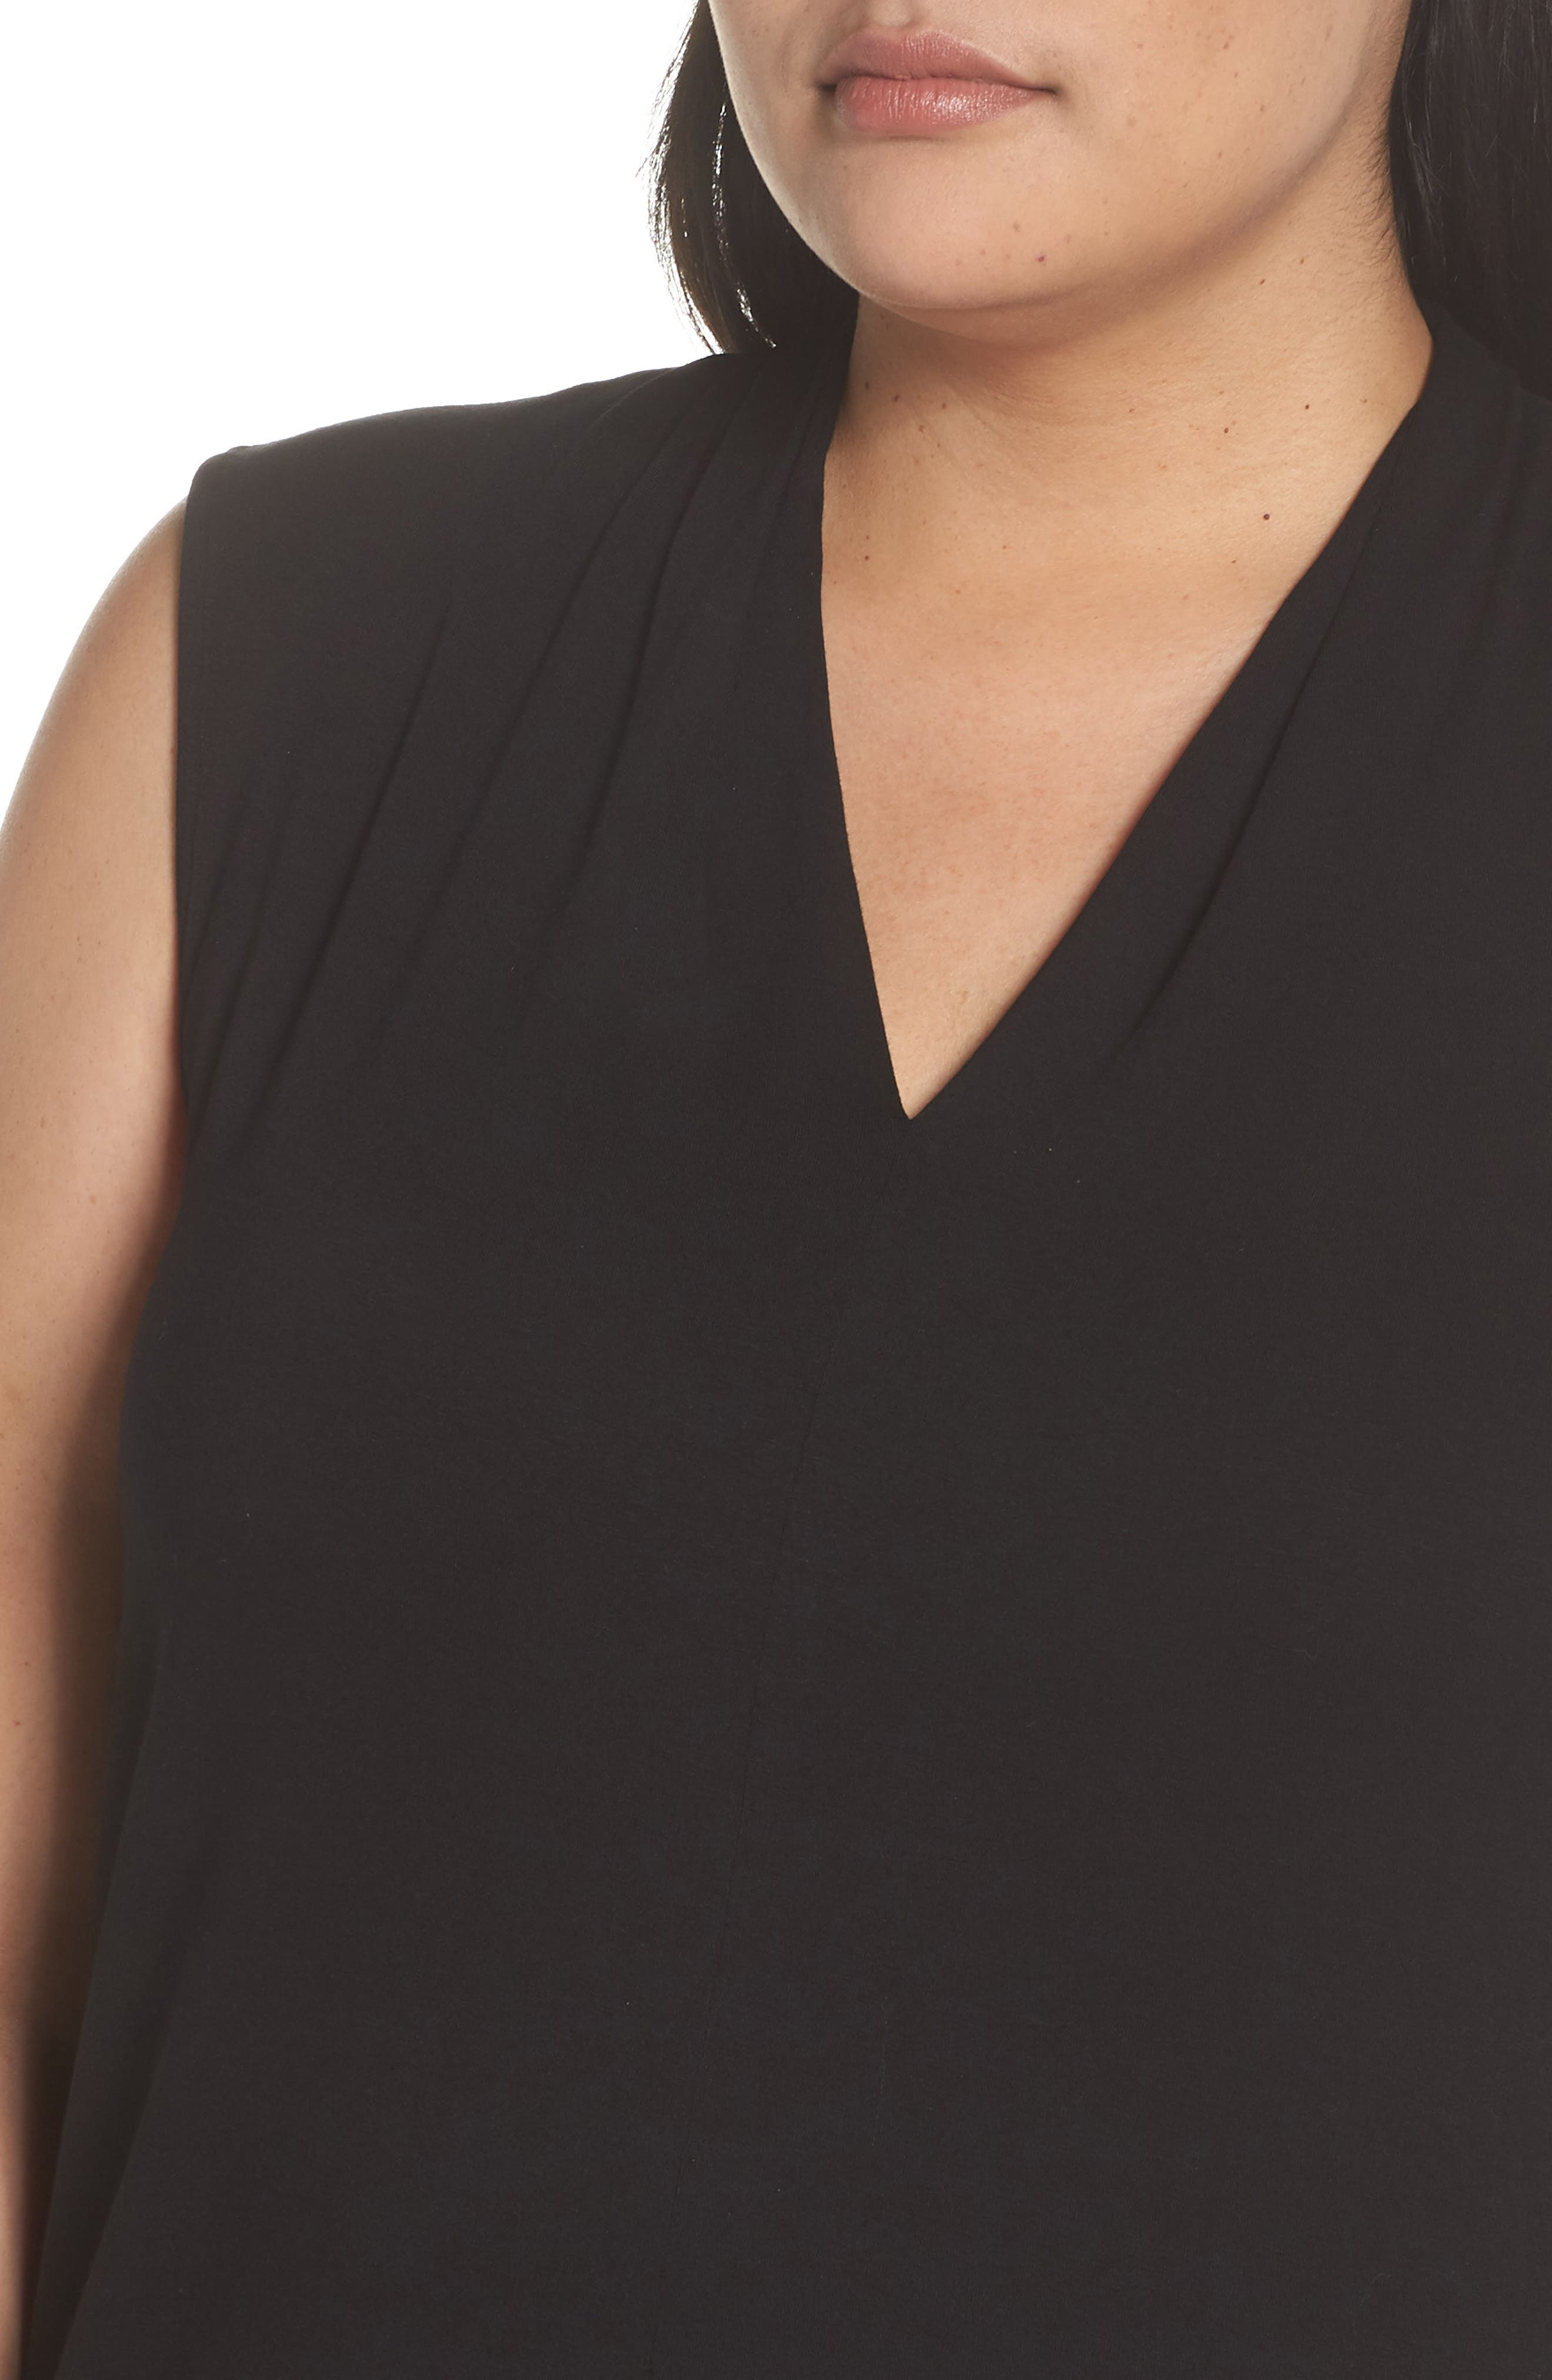 VINCE CAMUTO, Sleeveless V-Neck Knit Blouse, Alternate thumbnail 5, color, RICH BLACK